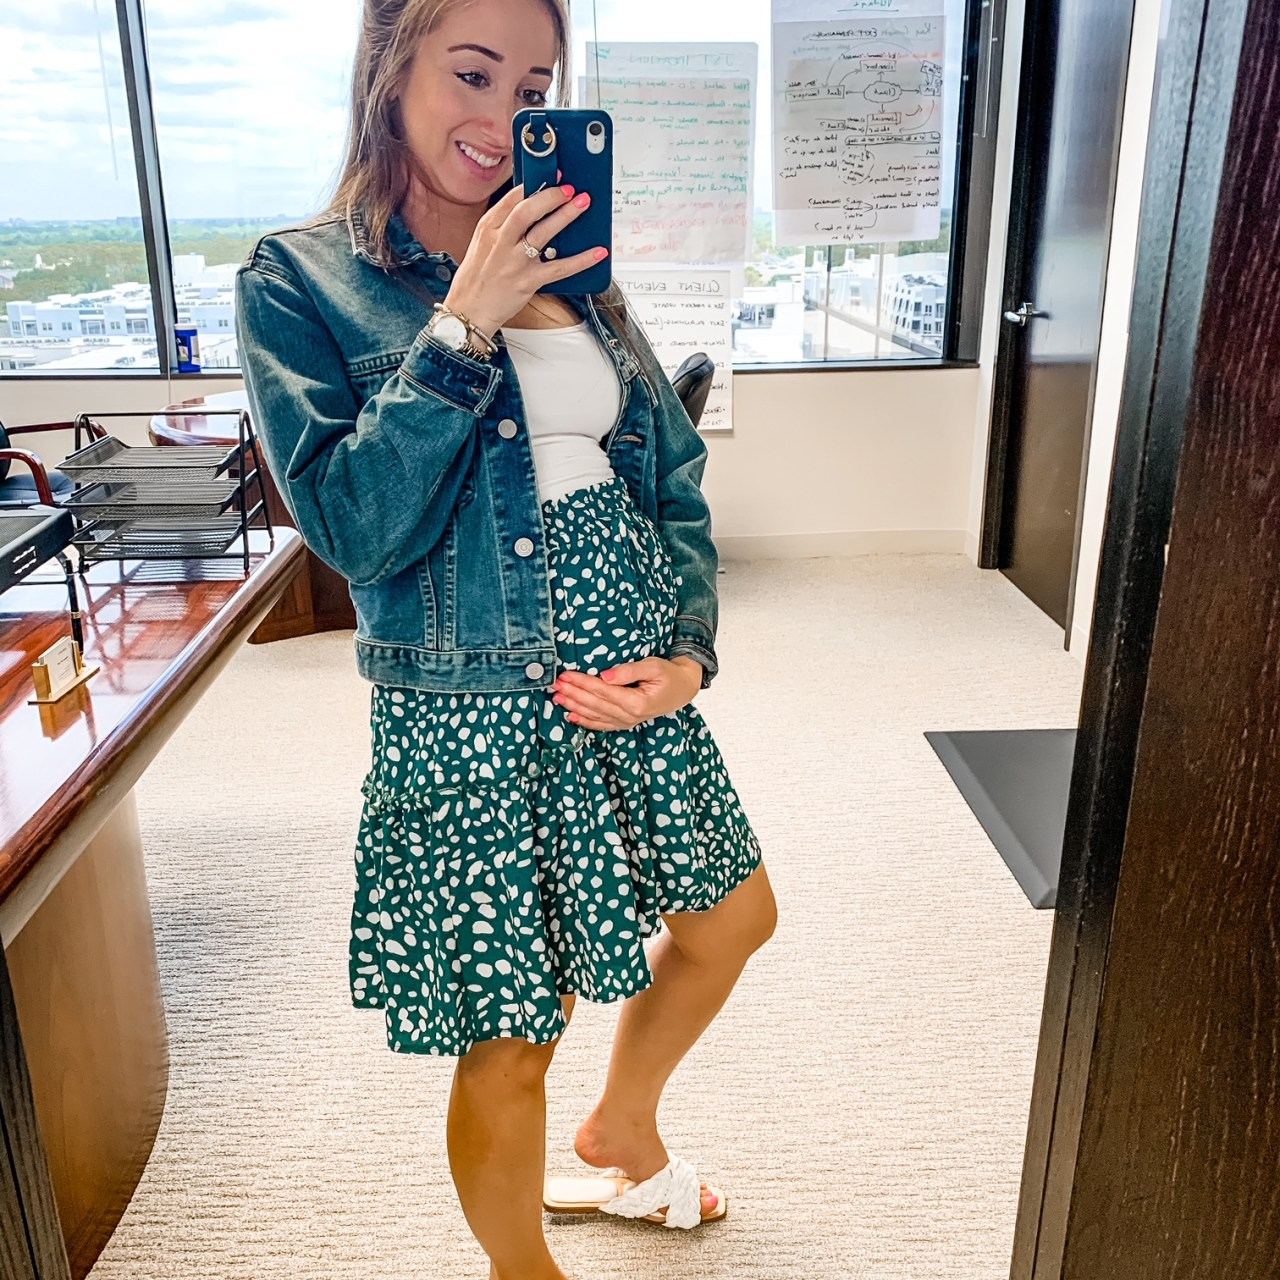 Second Trimester Maternity Looks for Summer